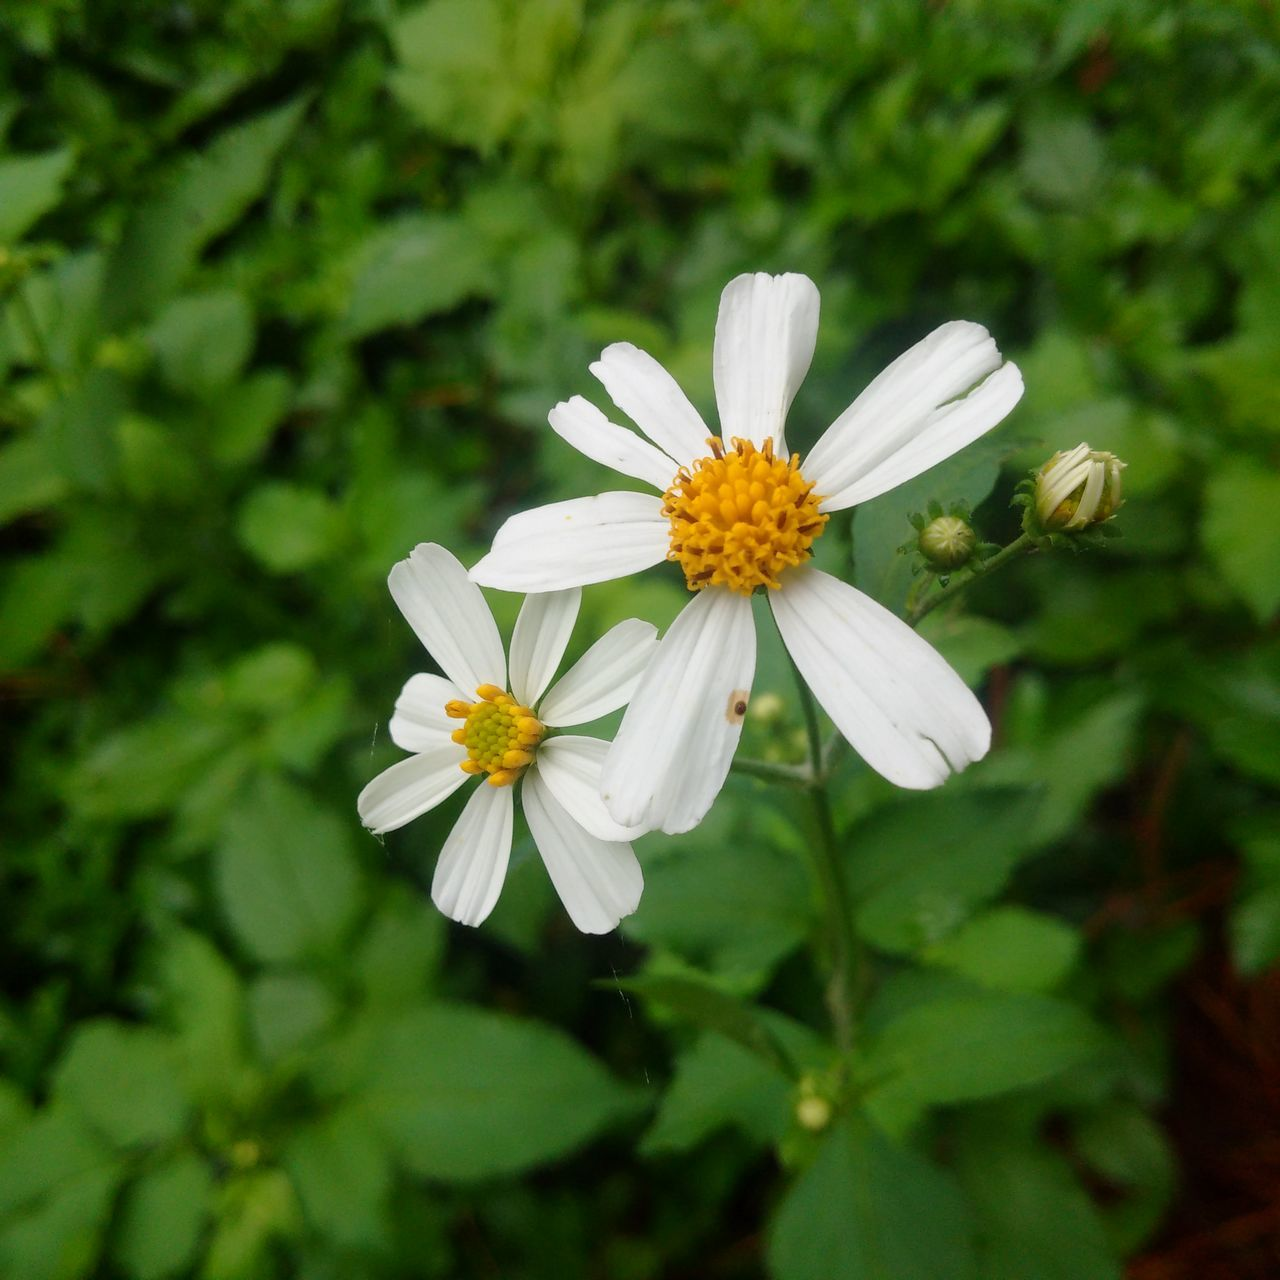 flower, nature, petal, fragility, white color, growth, plant, beauty in nature, flower head, freshness, no people, blooming, close-up, outdoors, day